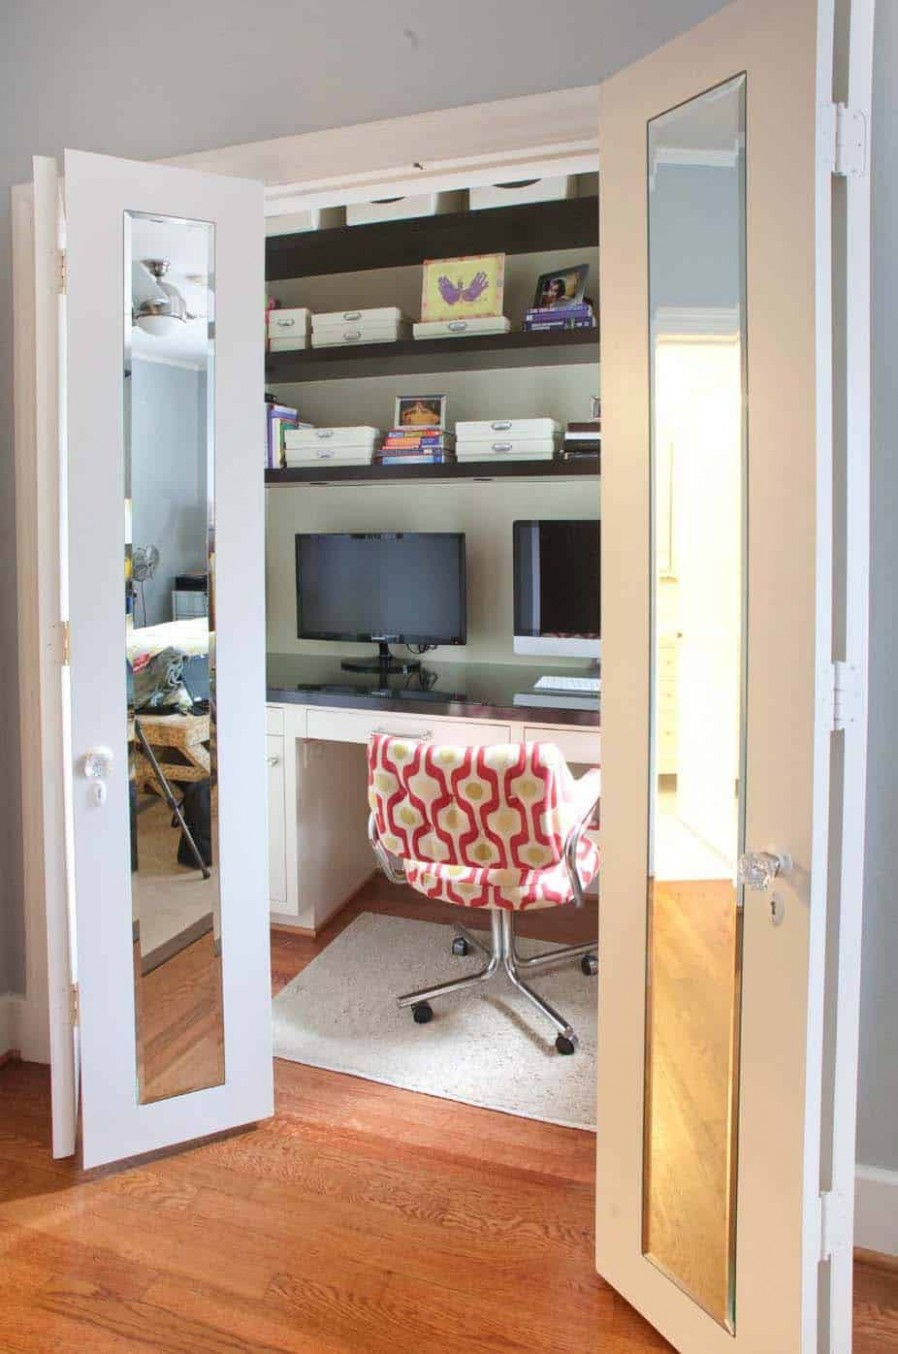 11 Fabulous ideas for a home office in the bedroom - Closet Office Ideas